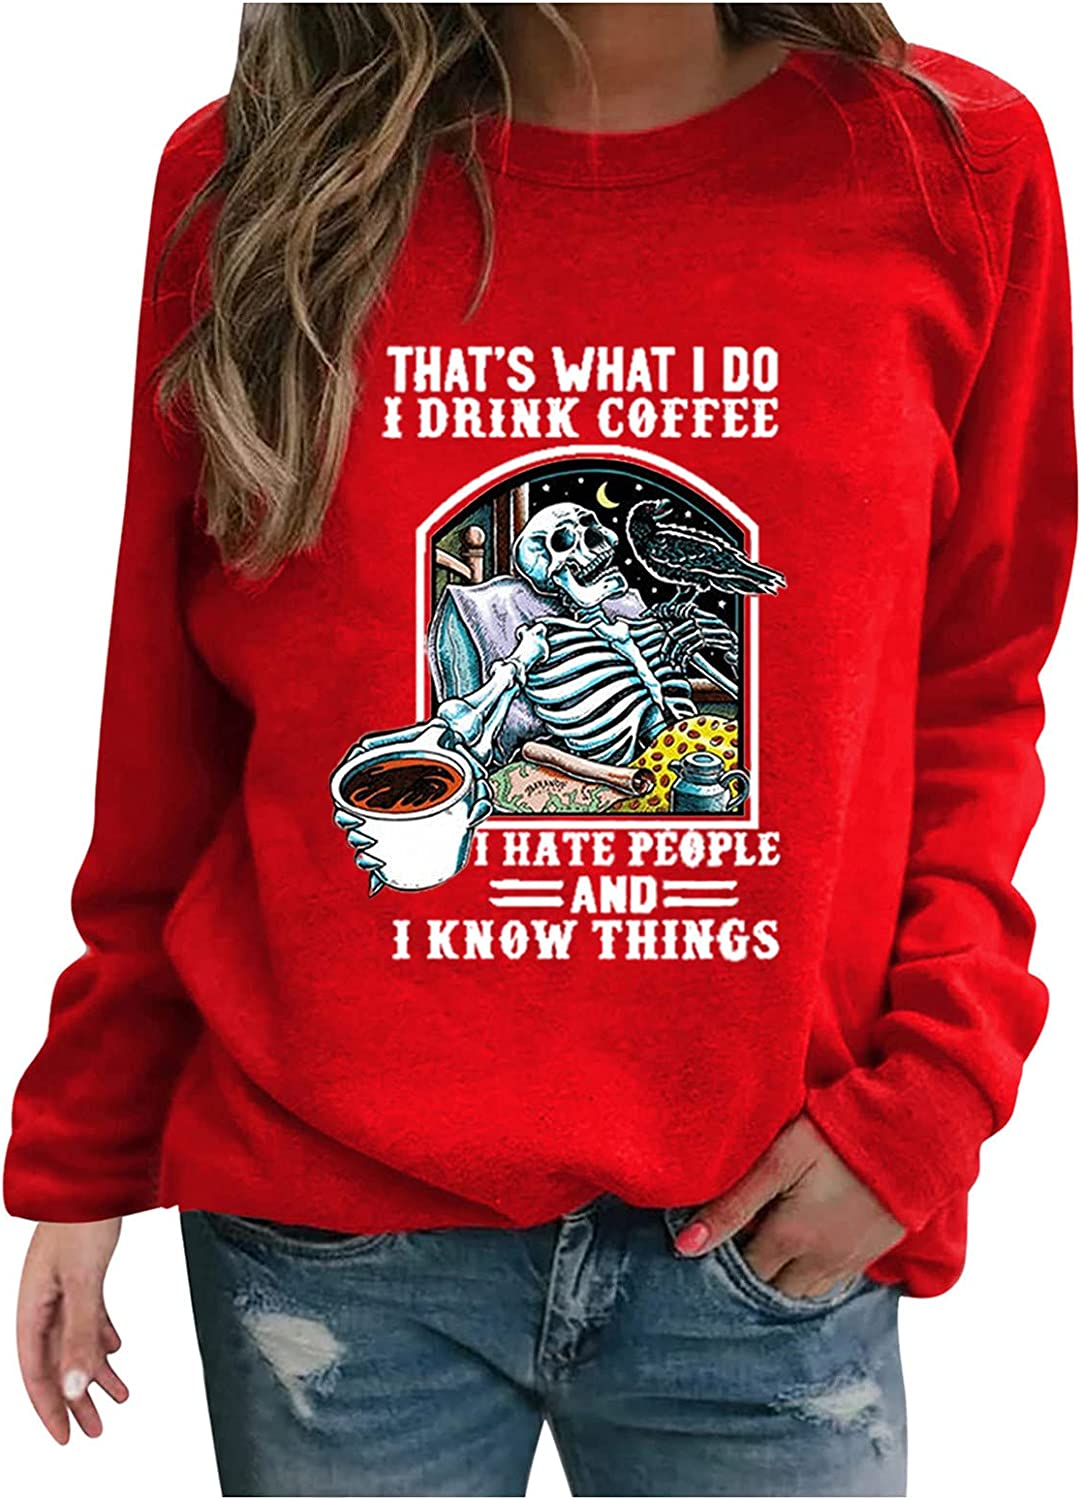 CCHENN Safety and trust Our shop OFFers the best service Women's Happy Halloween Bat Pullover Graphic Tops Crewnec